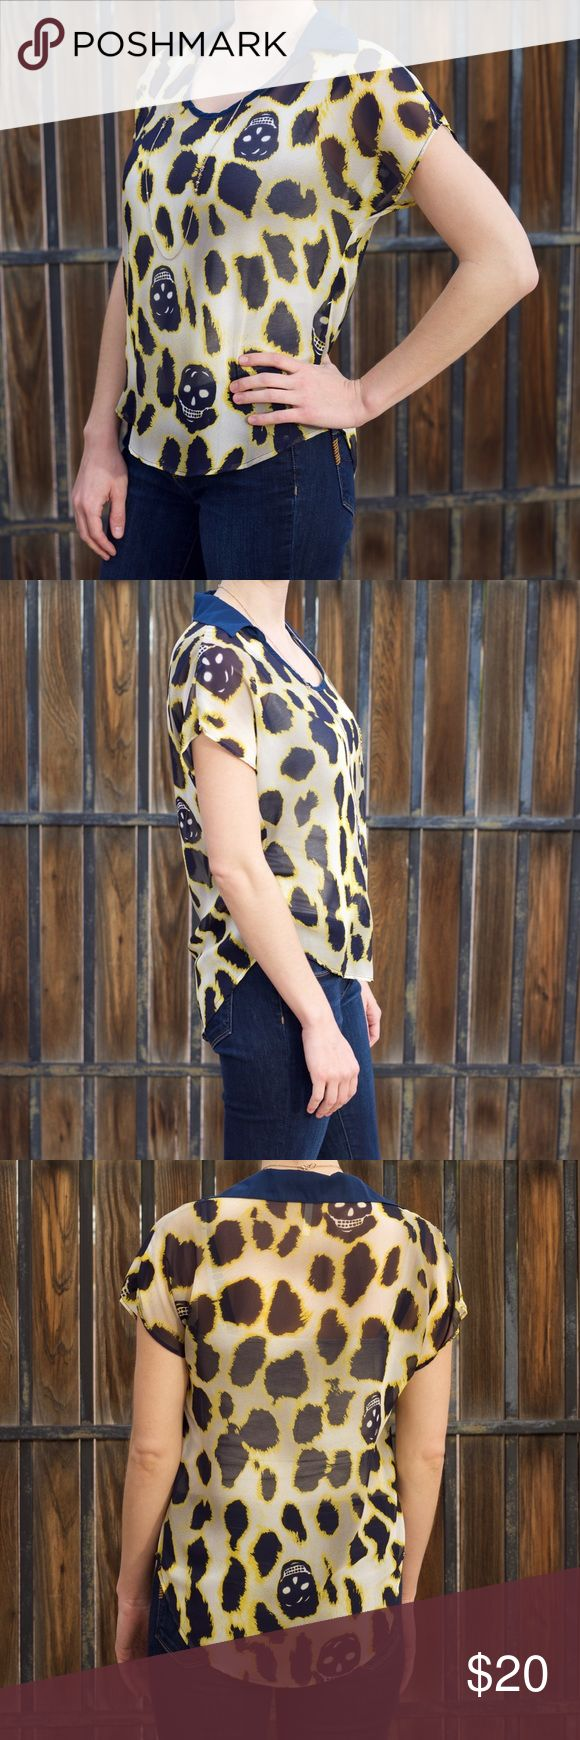 Sheer Collared Skull and Cheetah Print Blouse Teenplo flowy sheer blouse with skull and cheetah print pattern. Navy, yellow, and white design with navy collar. Seen worn with a gray cami underneath. 100% polyester. Fits like a women's size S. Gently worn, no tears, holes, or stains. Teenplo Tops Blouses